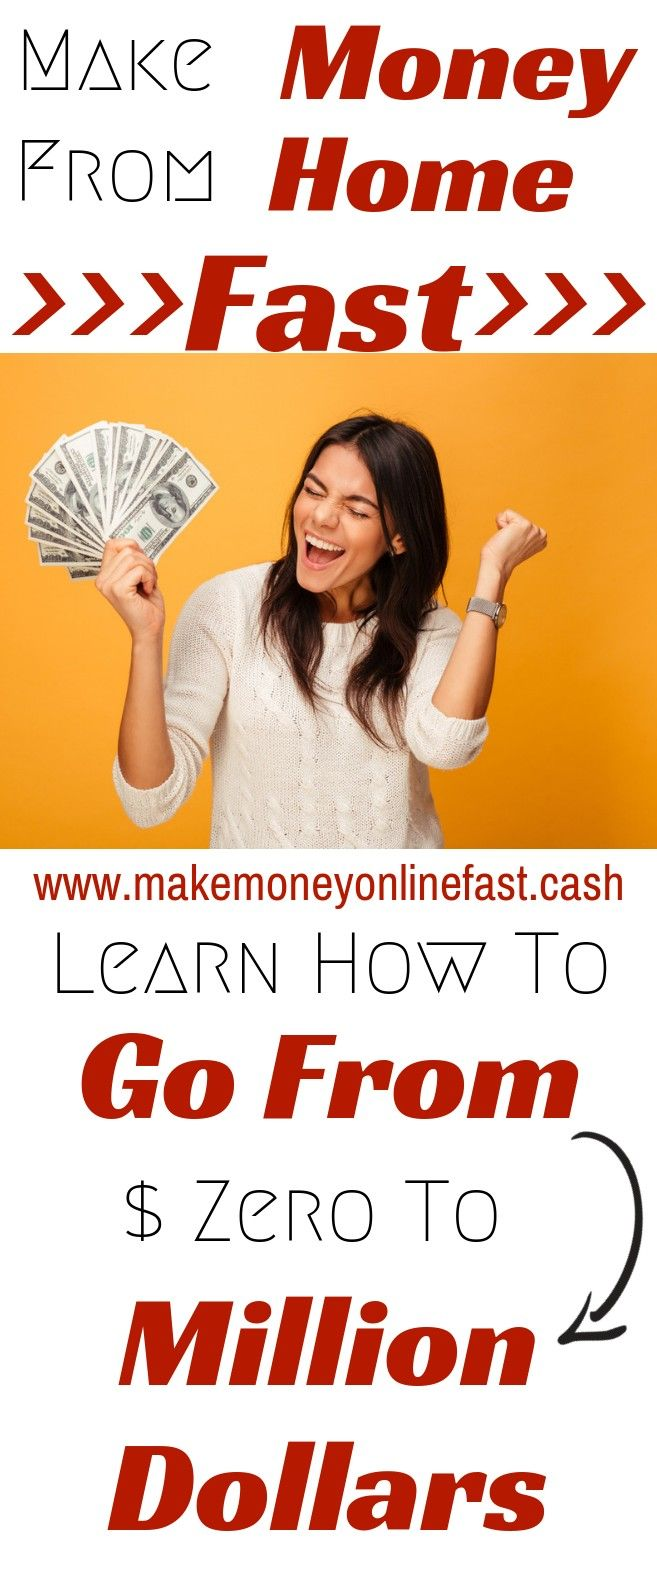 How to make money online – Top 7 ways to earn extra money online from home fast